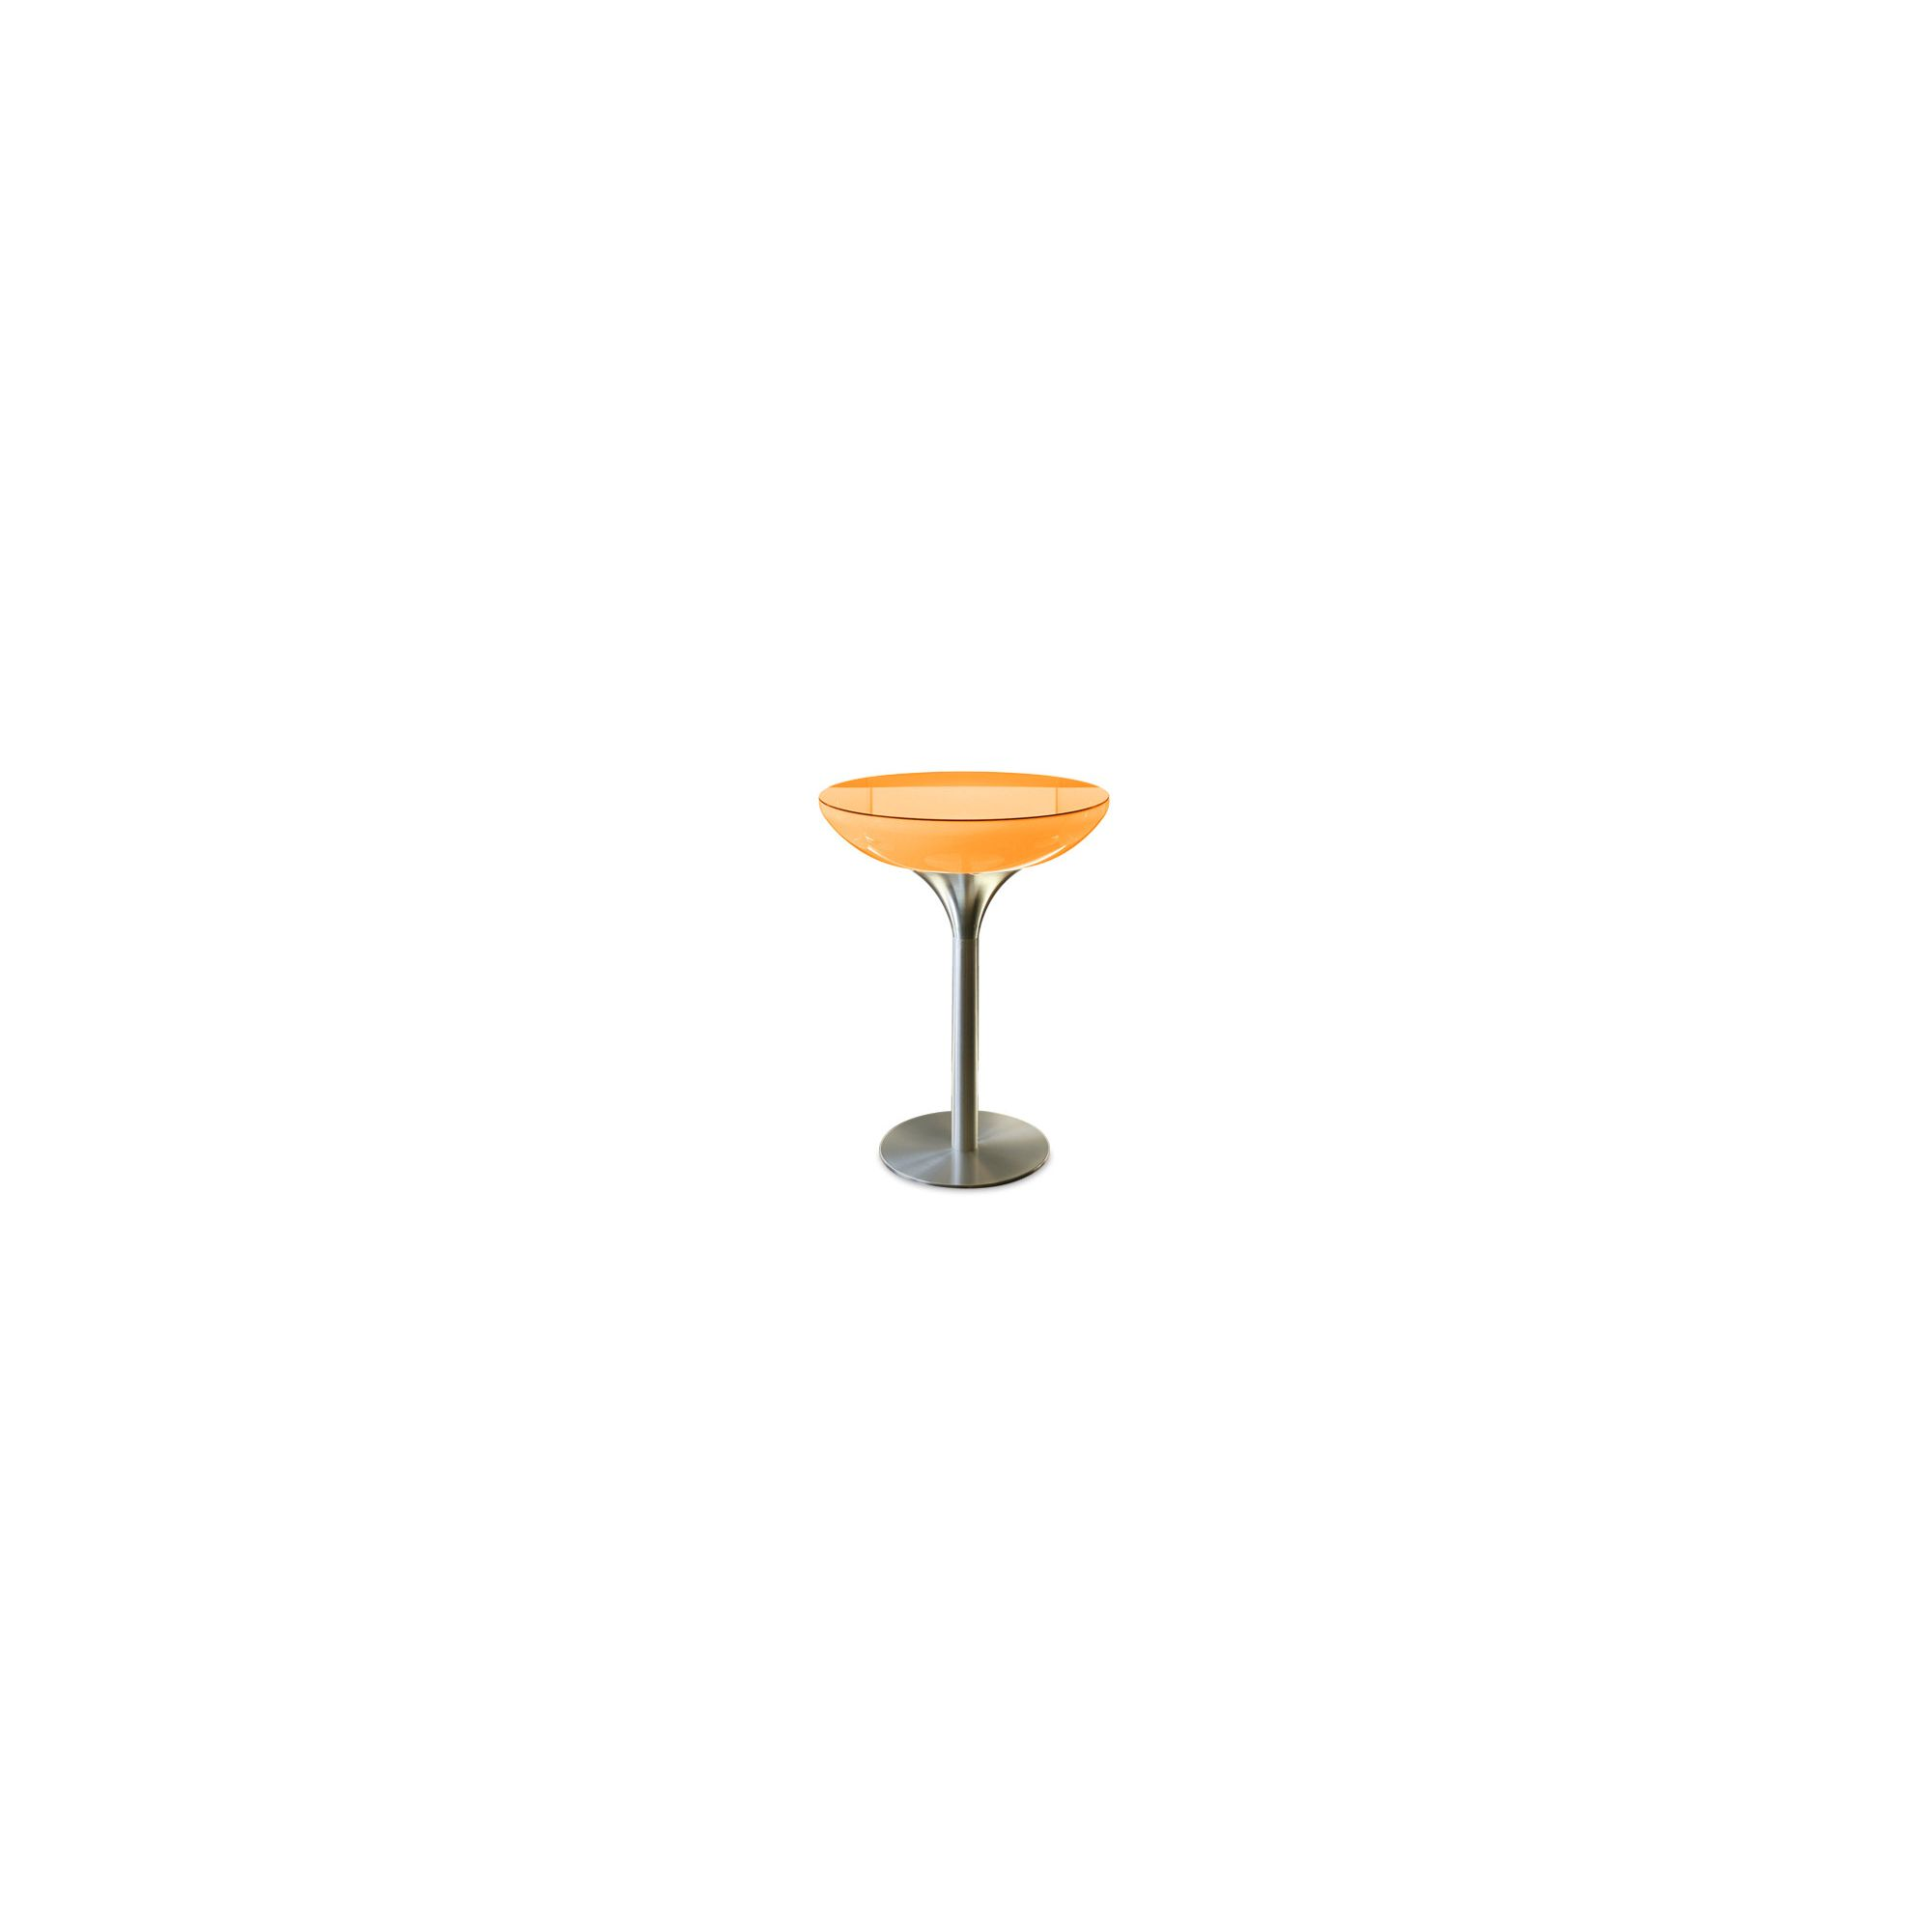 Moree Lounge Pro Table with Glass Top - 55cm at Tesco Direct